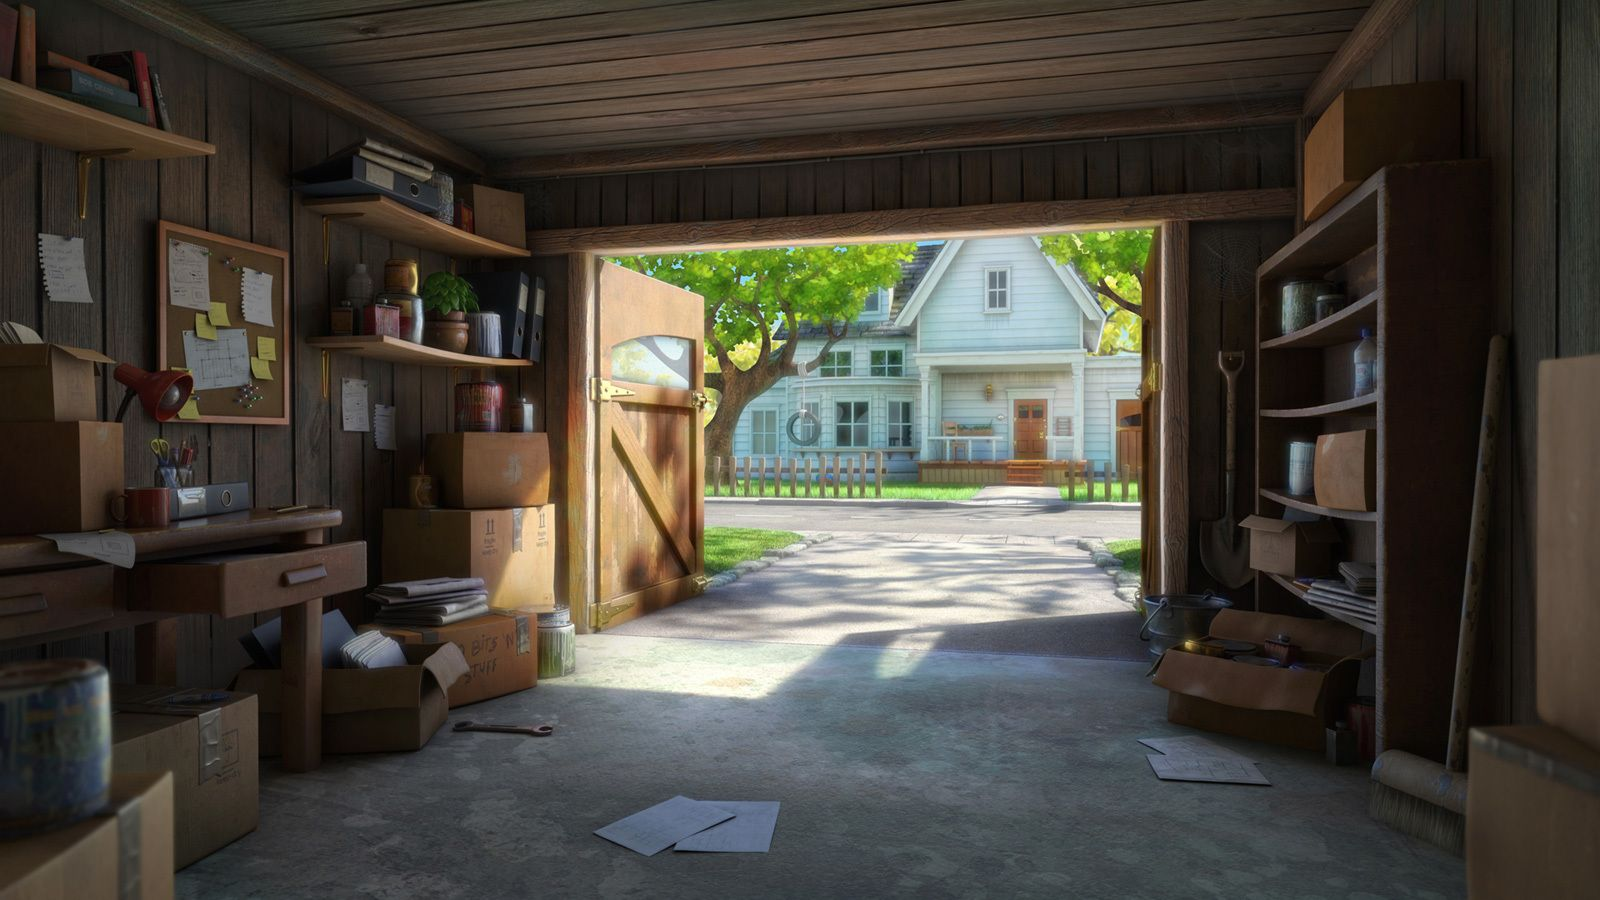 Summertime In The Garage By Robert Craig 3d Cgsociety Design Anime Scenery Wallpaper Anime Backgrounds Wallpapers